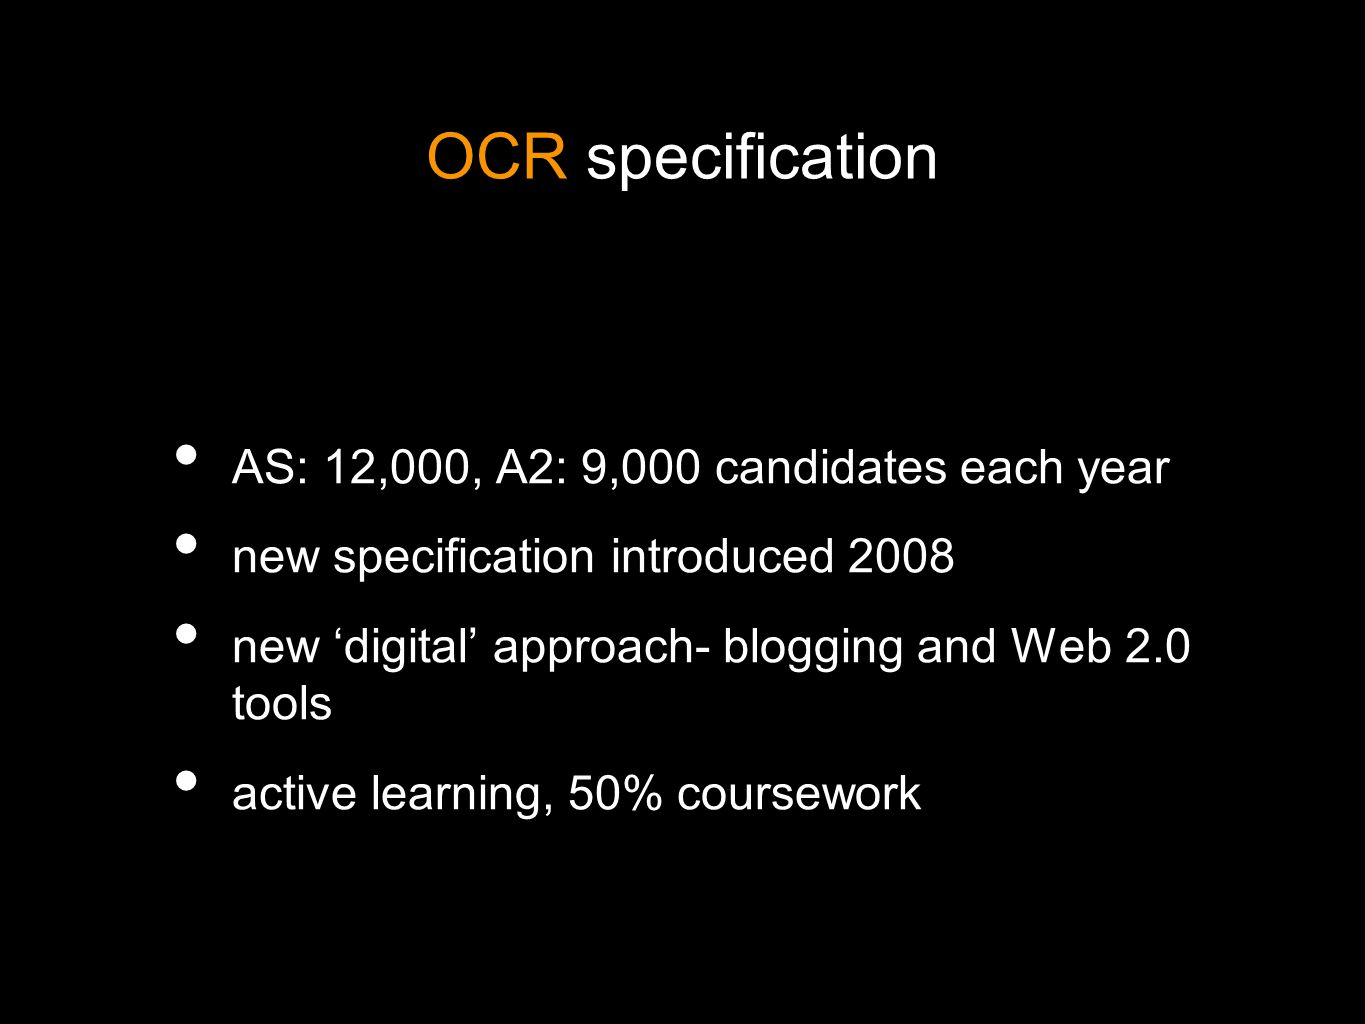 OCR specification AS: 12,000, A2: 9,000 candidates each year new specification introduced 2008 new digital approach- blogging and Web 2.0 tools active learning, 50% coursework